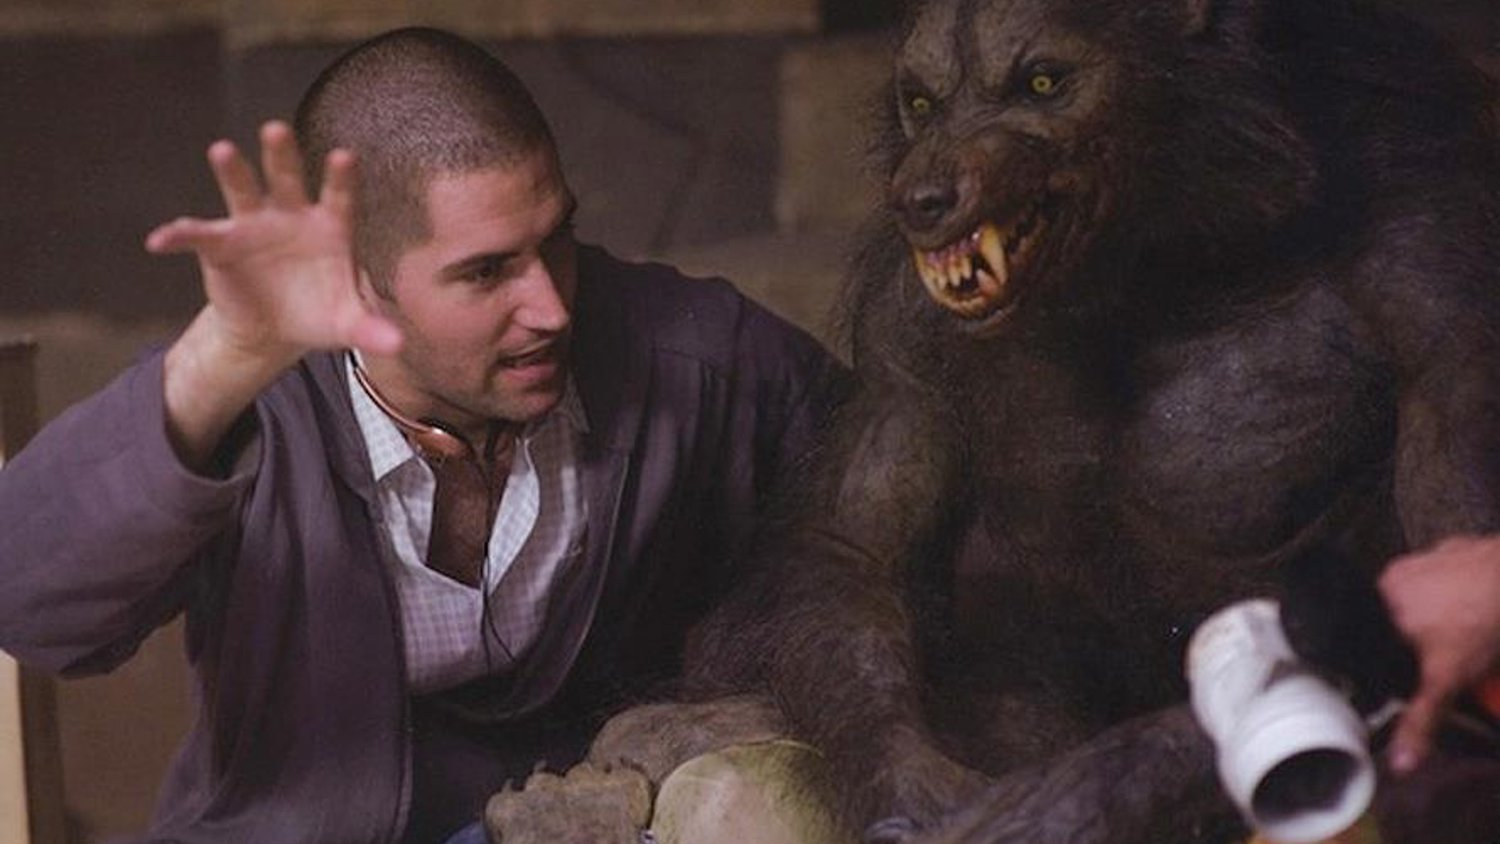 CABIN IN THE WOODS Director Drew Goddard Is Set to Helm BAD TIMES AT THE EL ROYALE